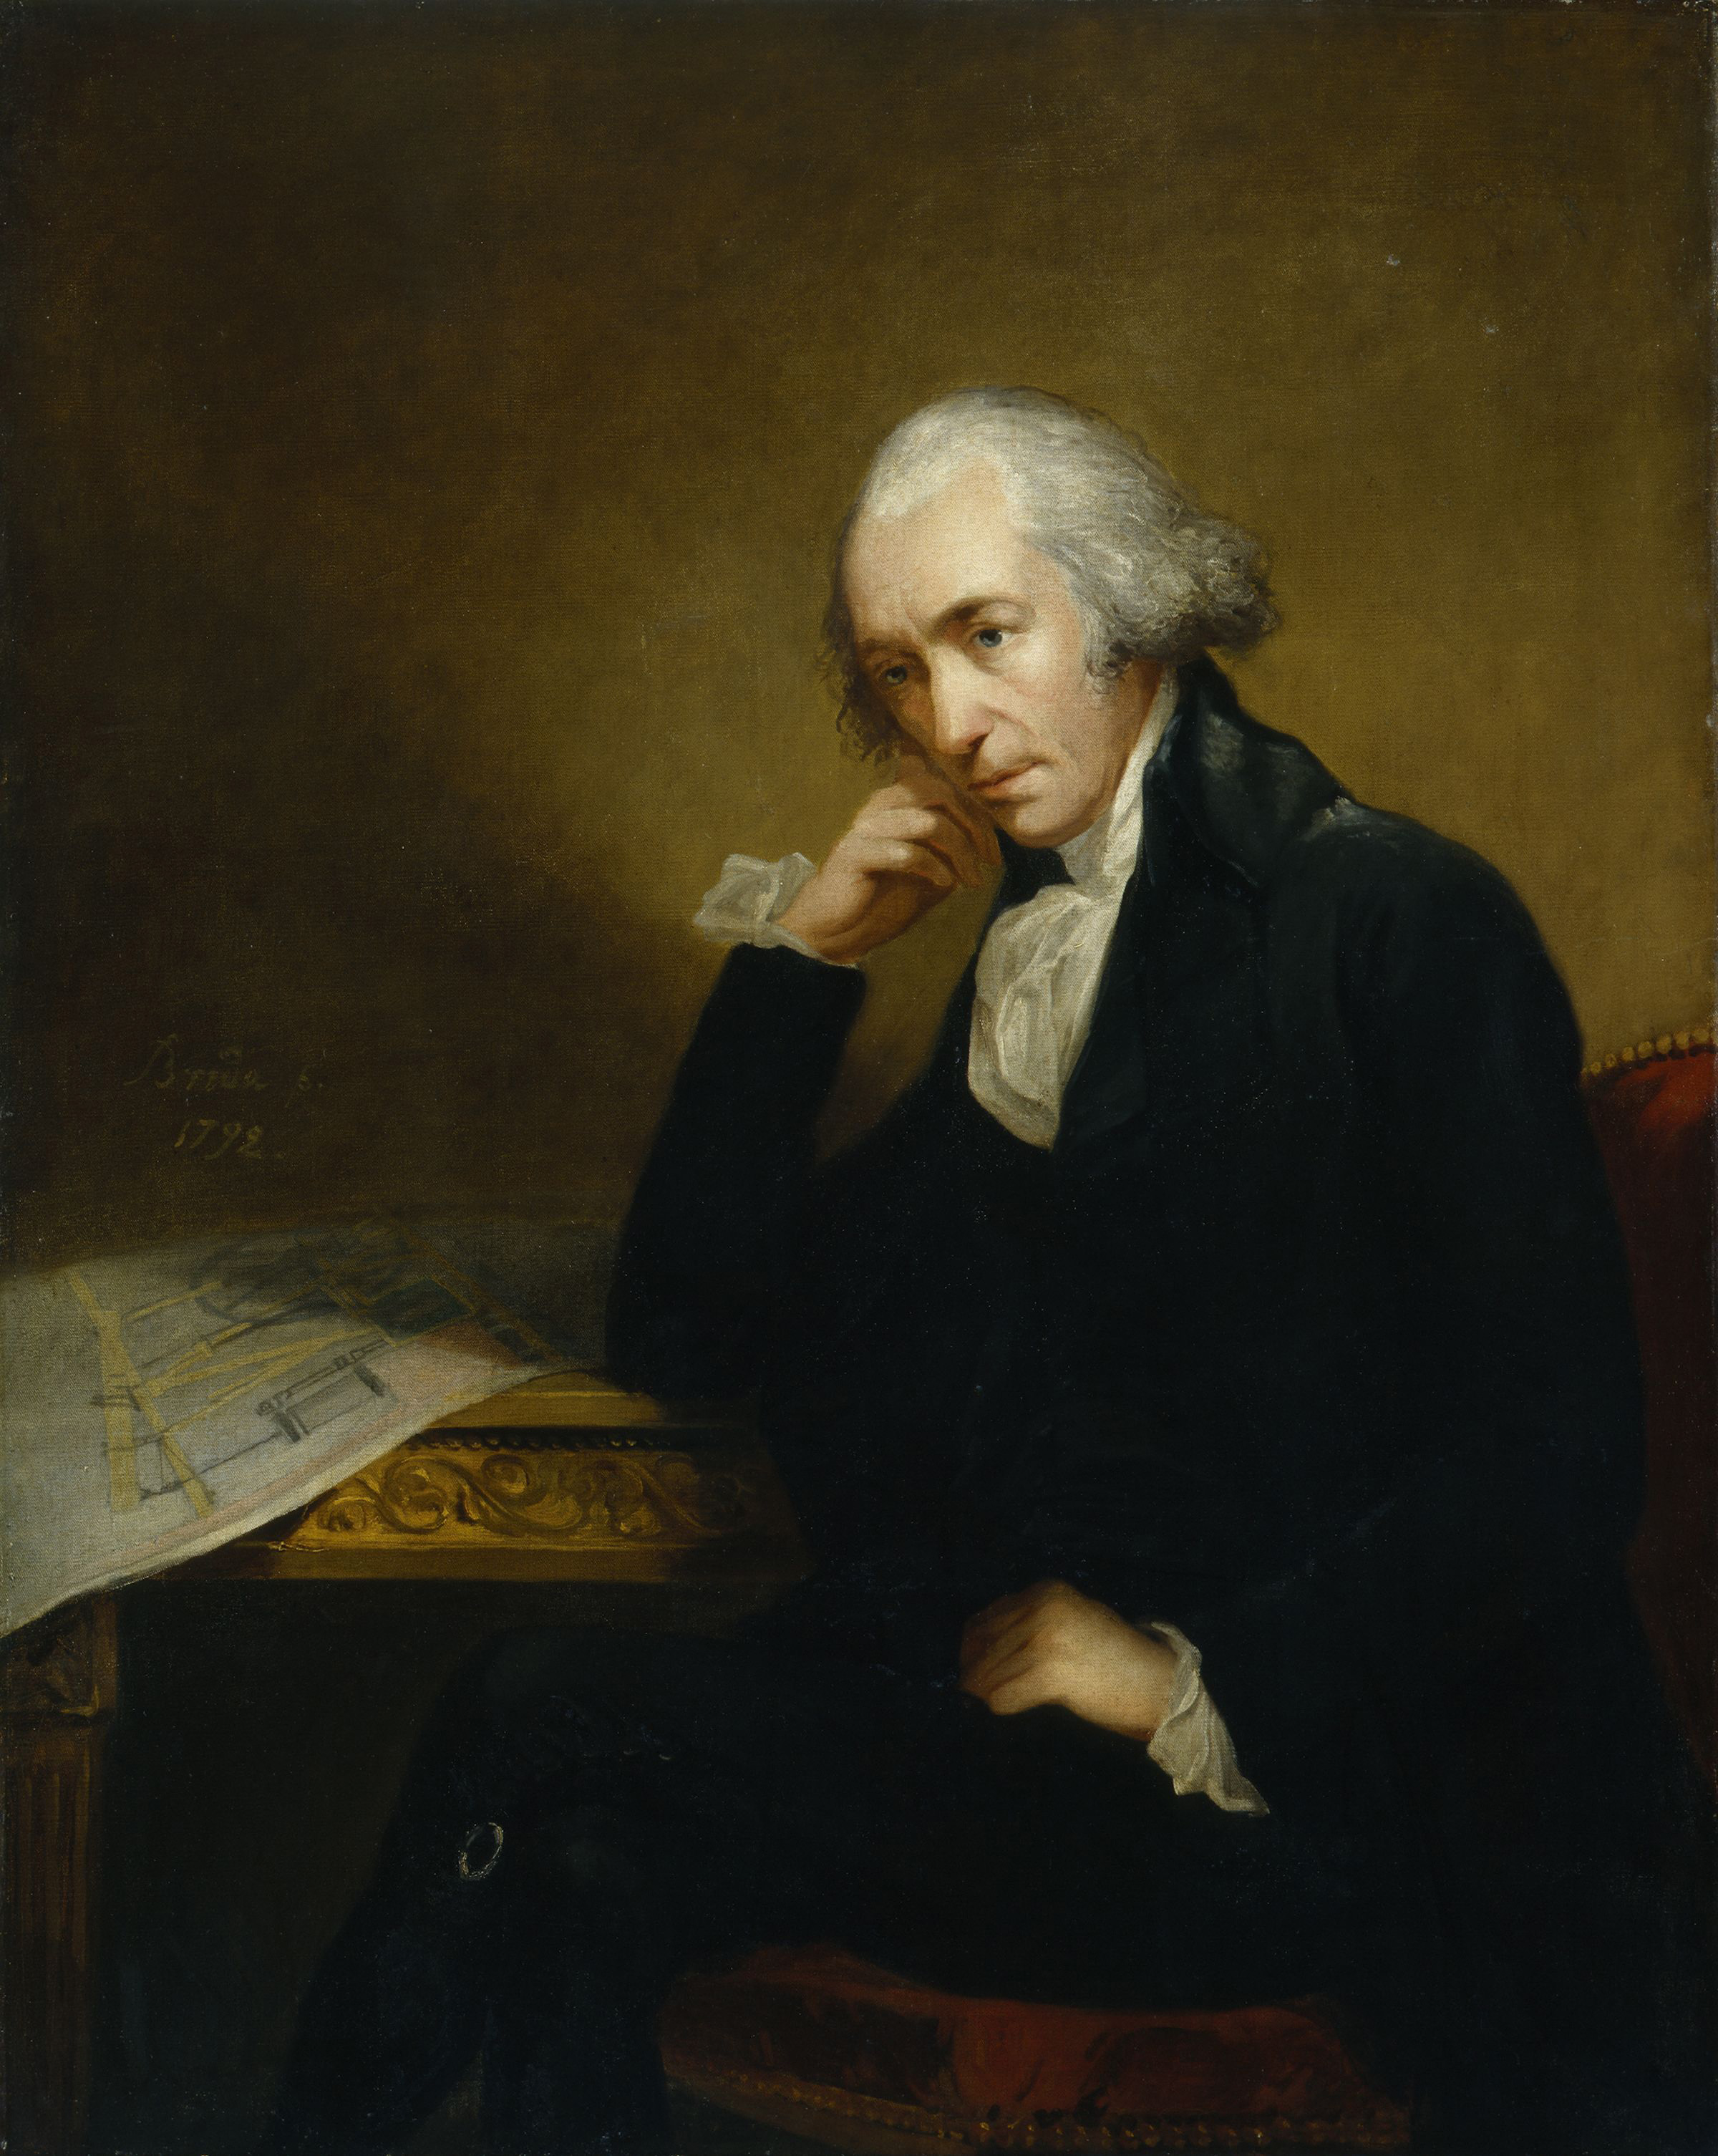 Portrait of James Watt, the noted Scottish inventor and mechanical engineer by Carl Frederik von Breda.